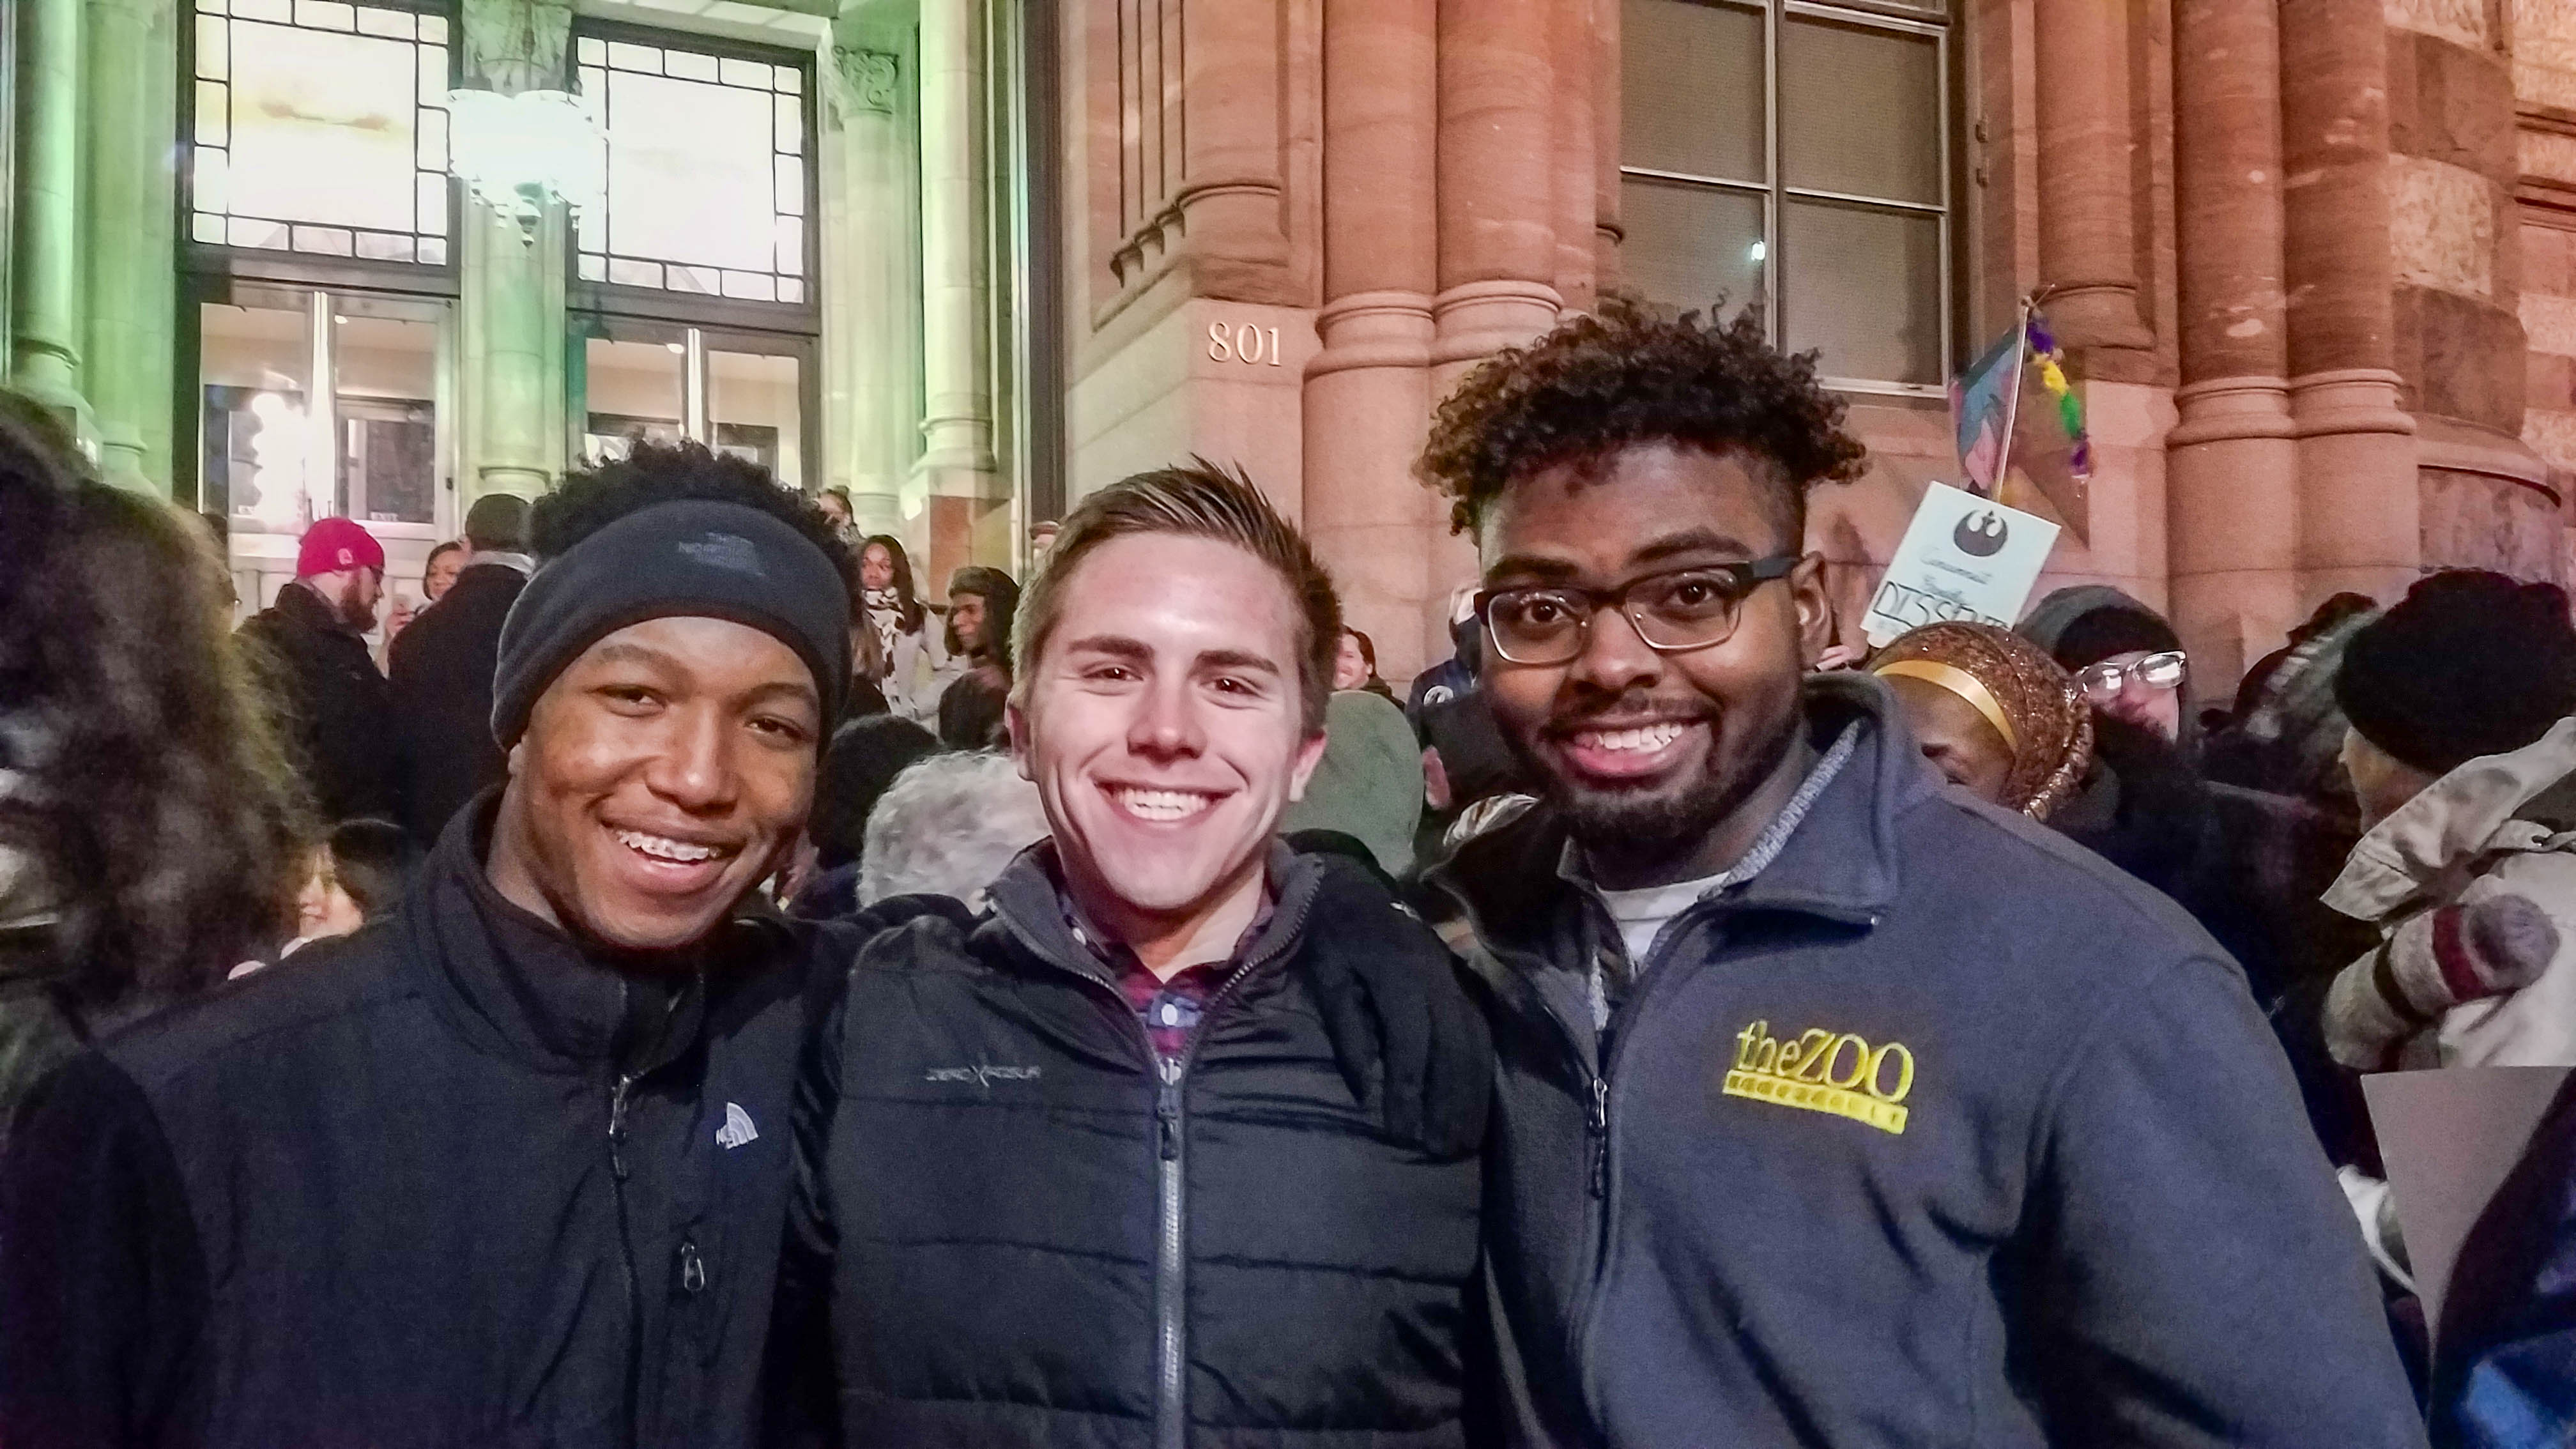 NKU student Sami Dada, Michael Bailey and Patrick Edwards attend Monday's rally in Cincinnati protesting President Donald Trump's executive order temporarily limiting immigration from certain countries.